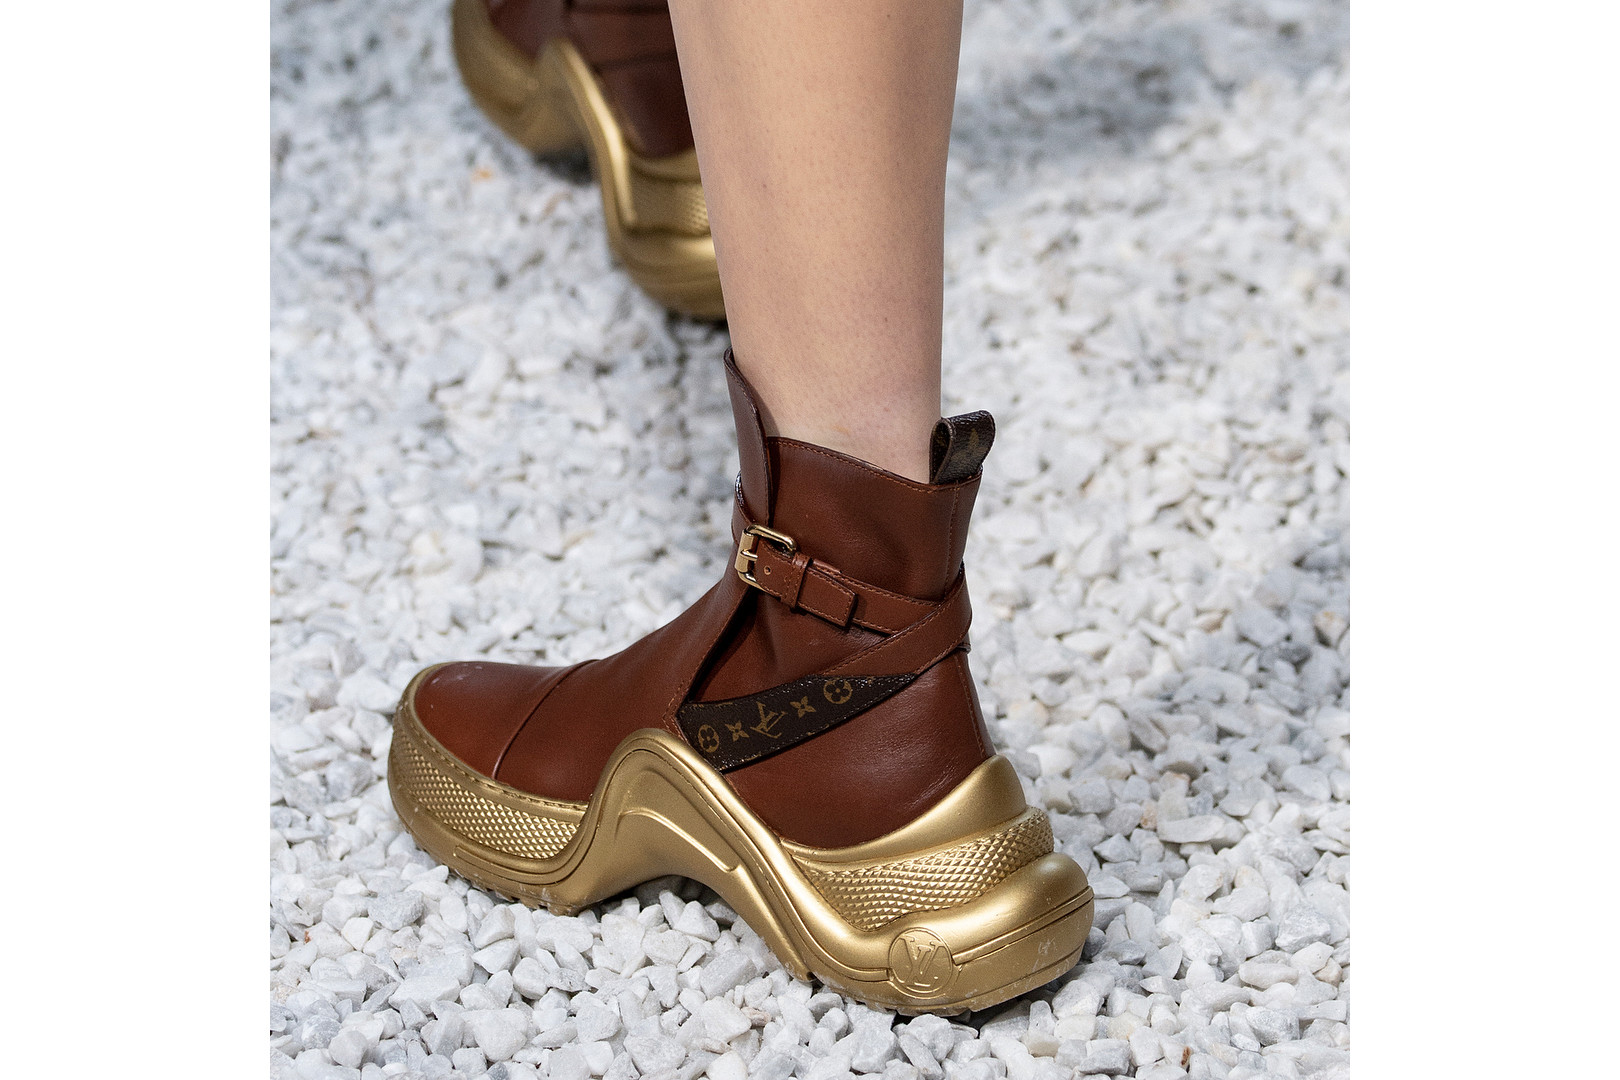 Louis Vuitton Archlight Sneakers Cruise